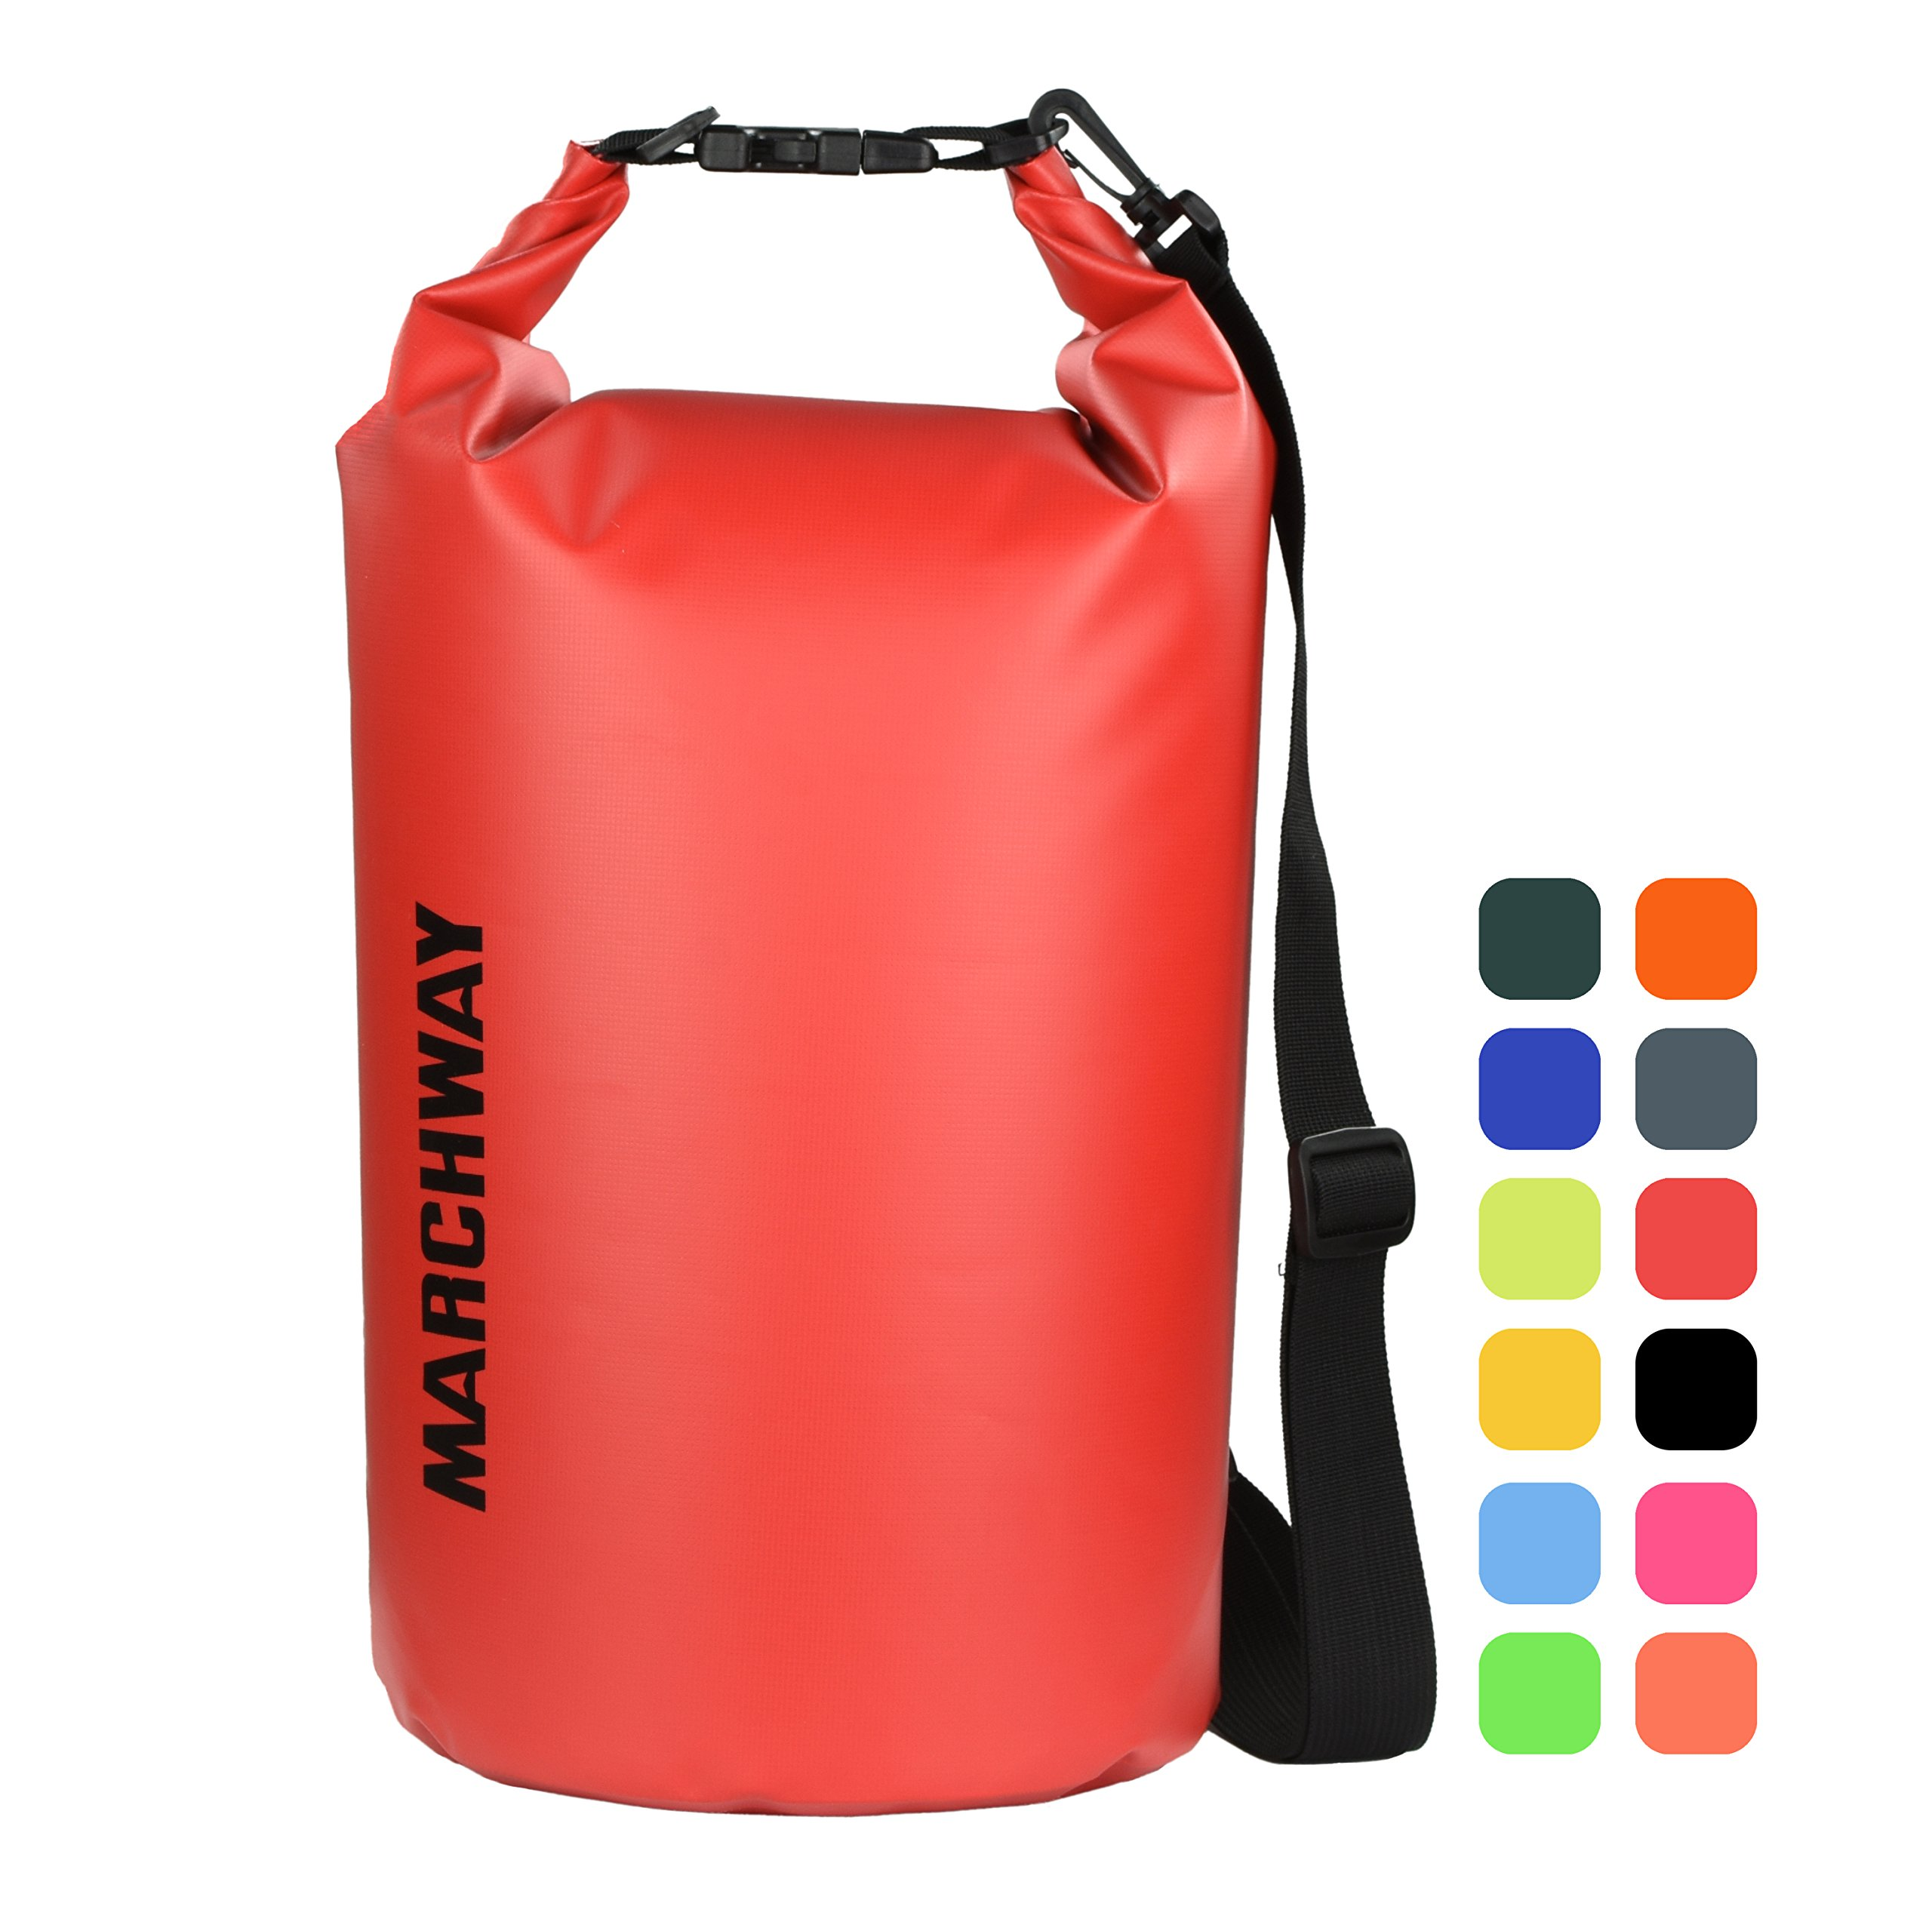 MARCHWAY Floating Waterproof Dry Bag 5L/10L/20L/30L, Roll Top Sack Keeps Gear Dry for Sport, Kayaking, Rafting, Boating, Swimming, Camping, Hiking, Beach, Fishing (Red, 20L) by MARCHWAY